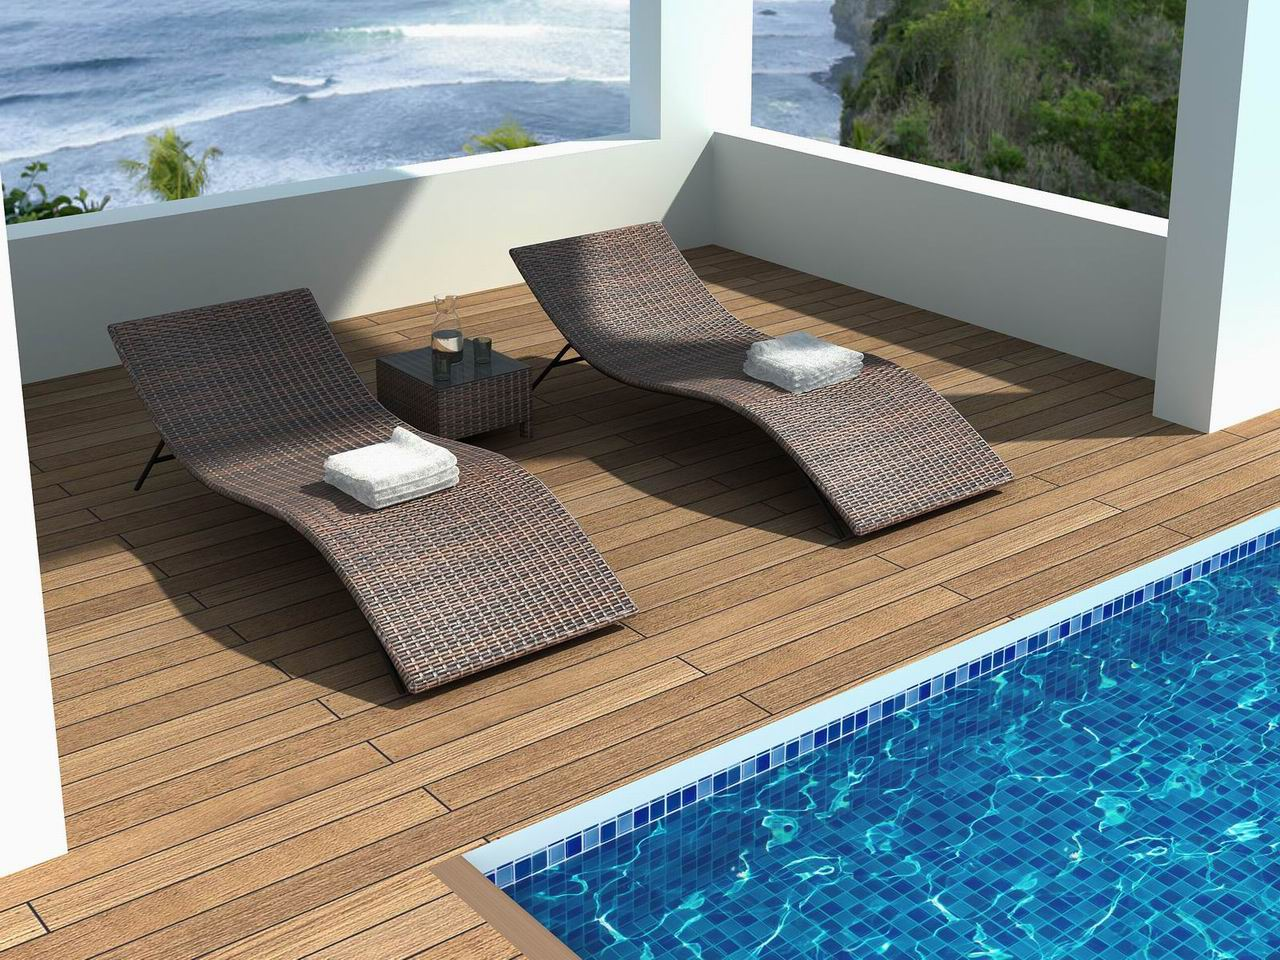 ... Outdoor Pool Furniture Garden_furniture_patio_furniture Image011  Slide1new